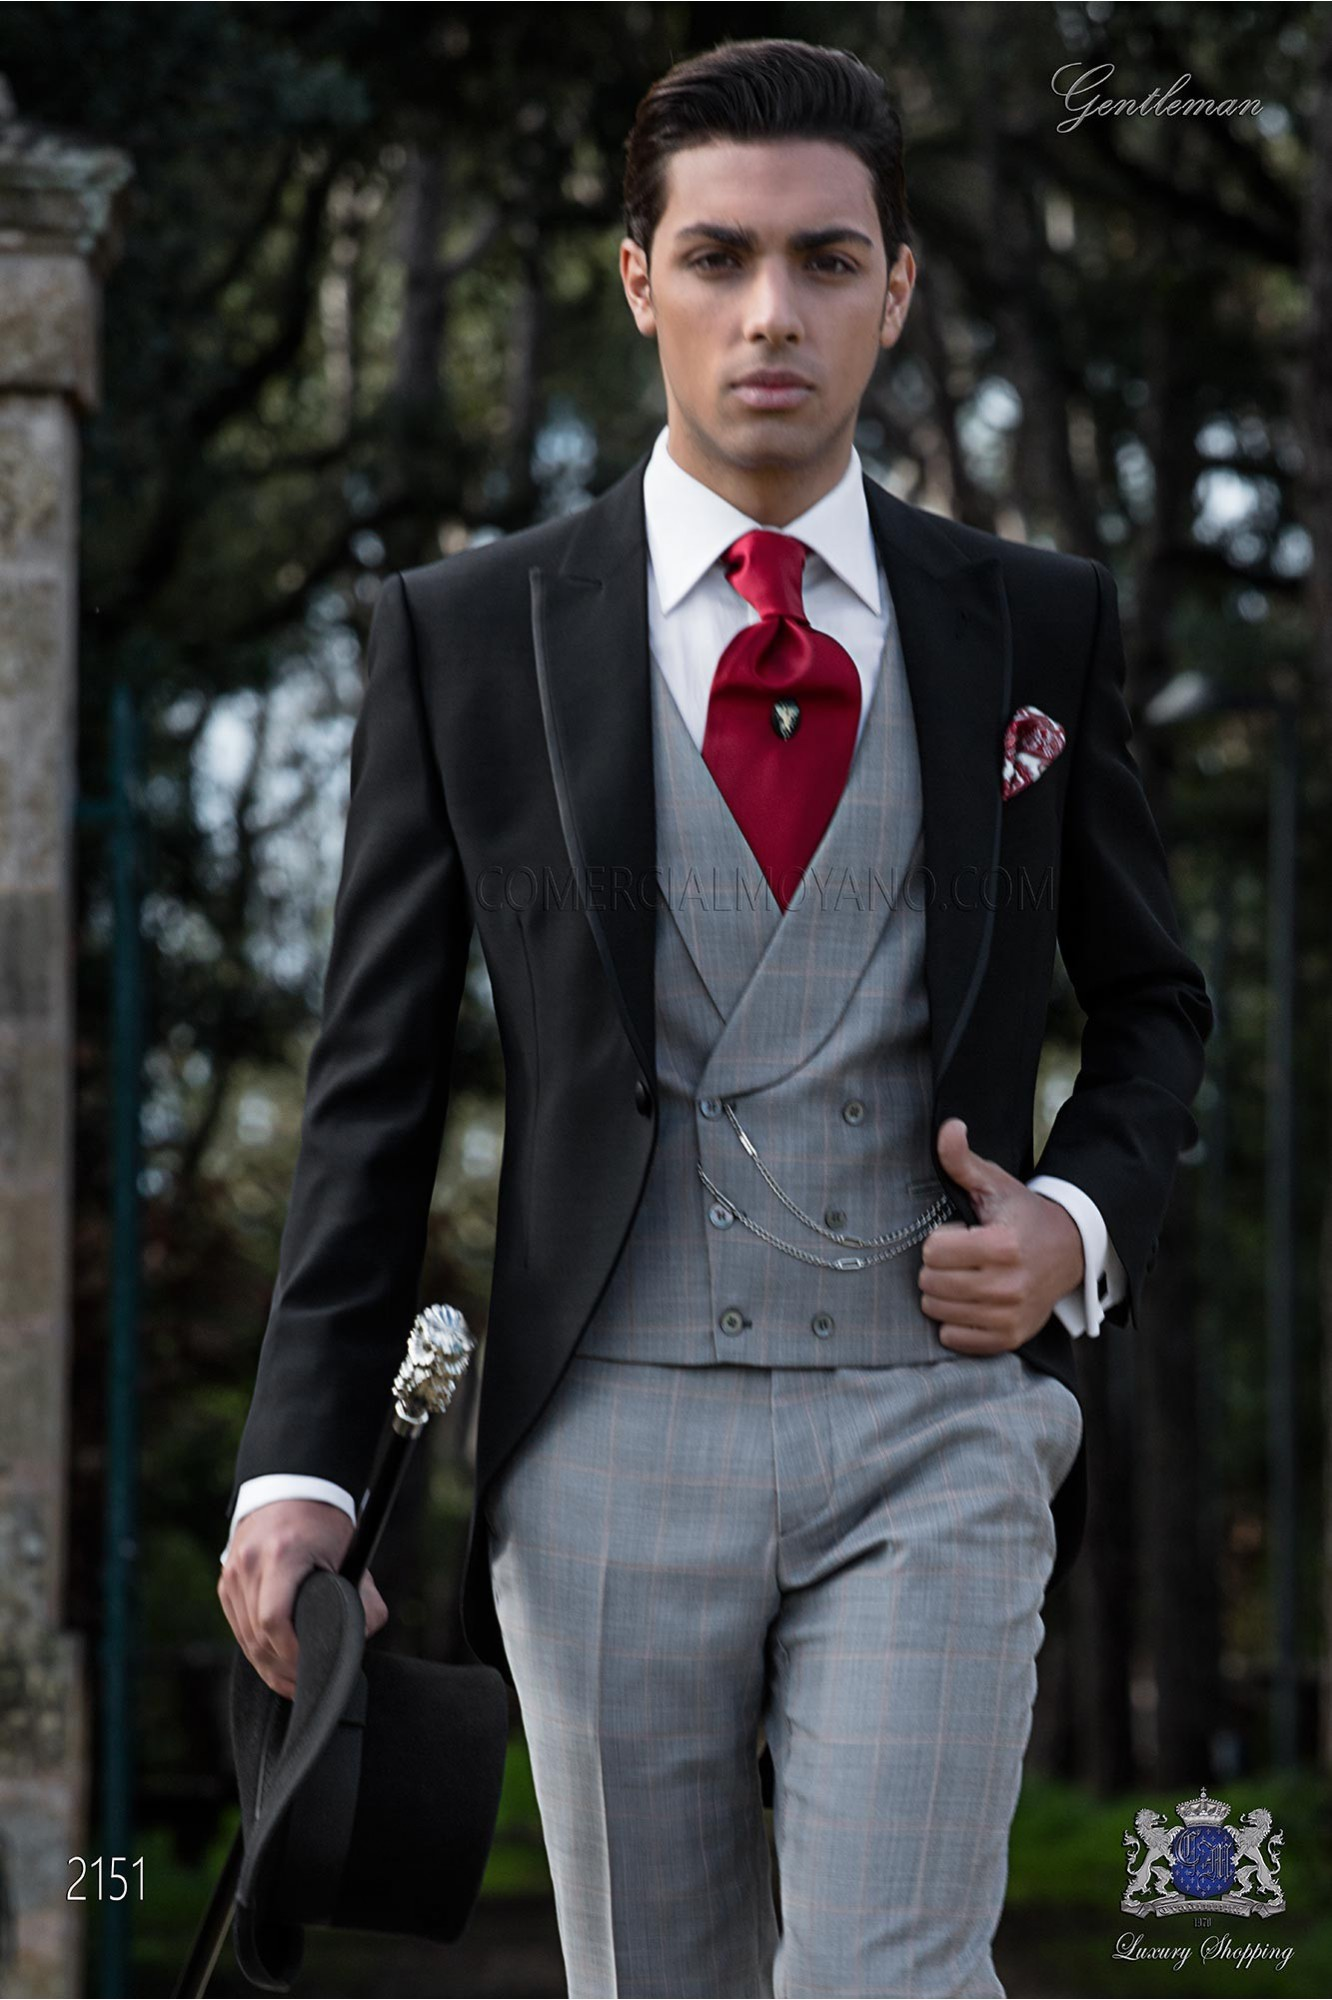 Black morning suit with Prince of Wales trousers